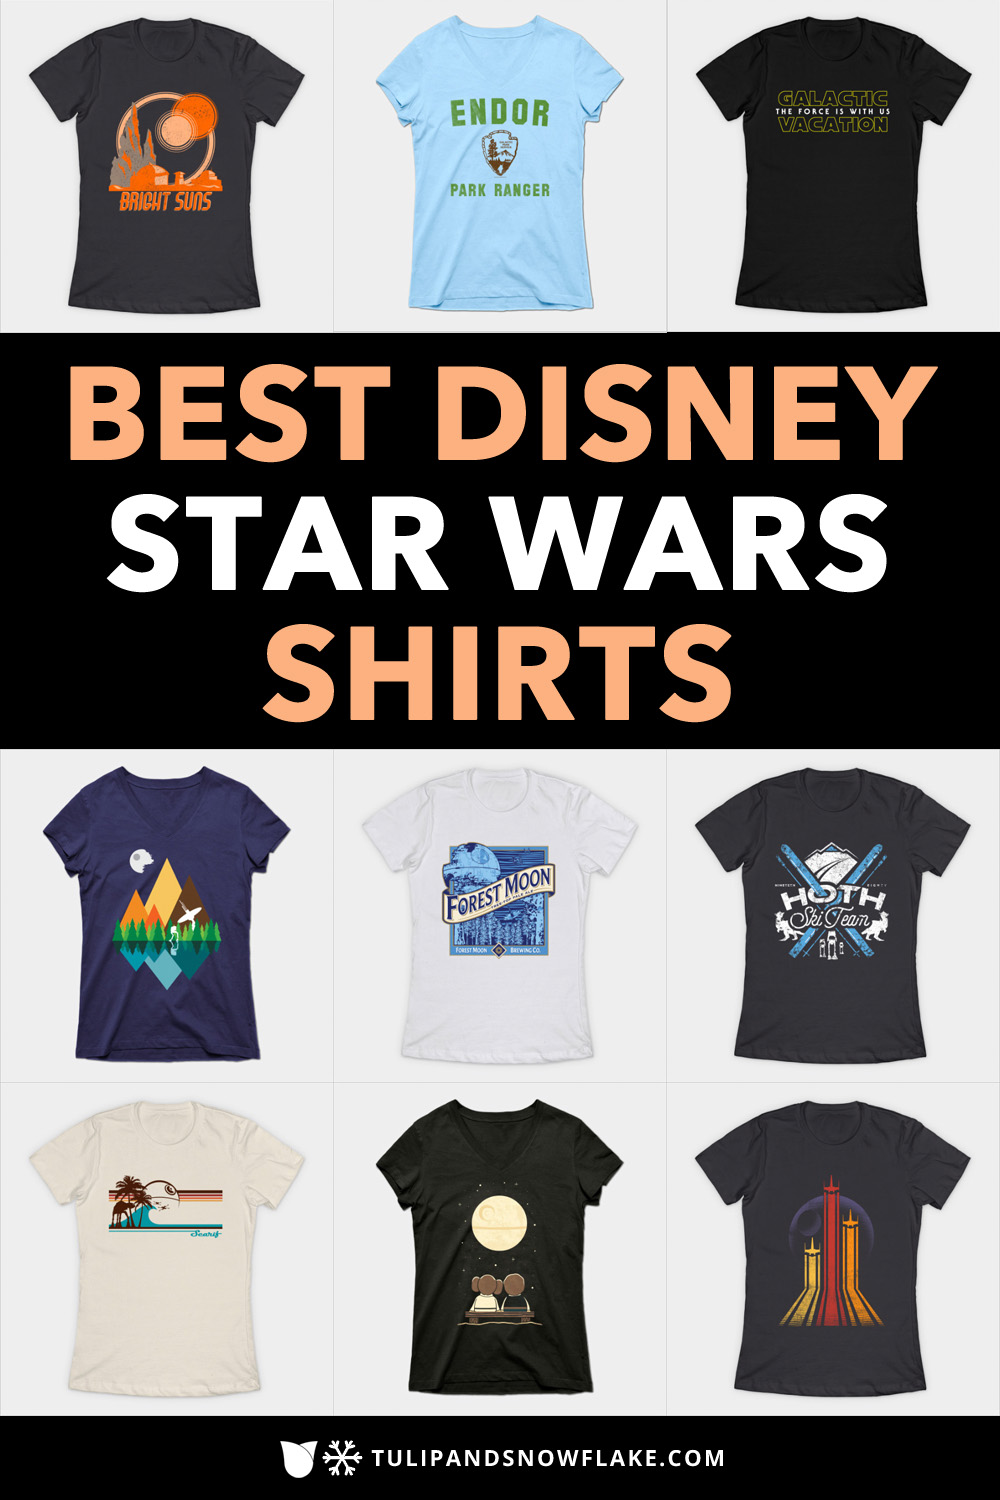 Best Disney Star Wars Shirts